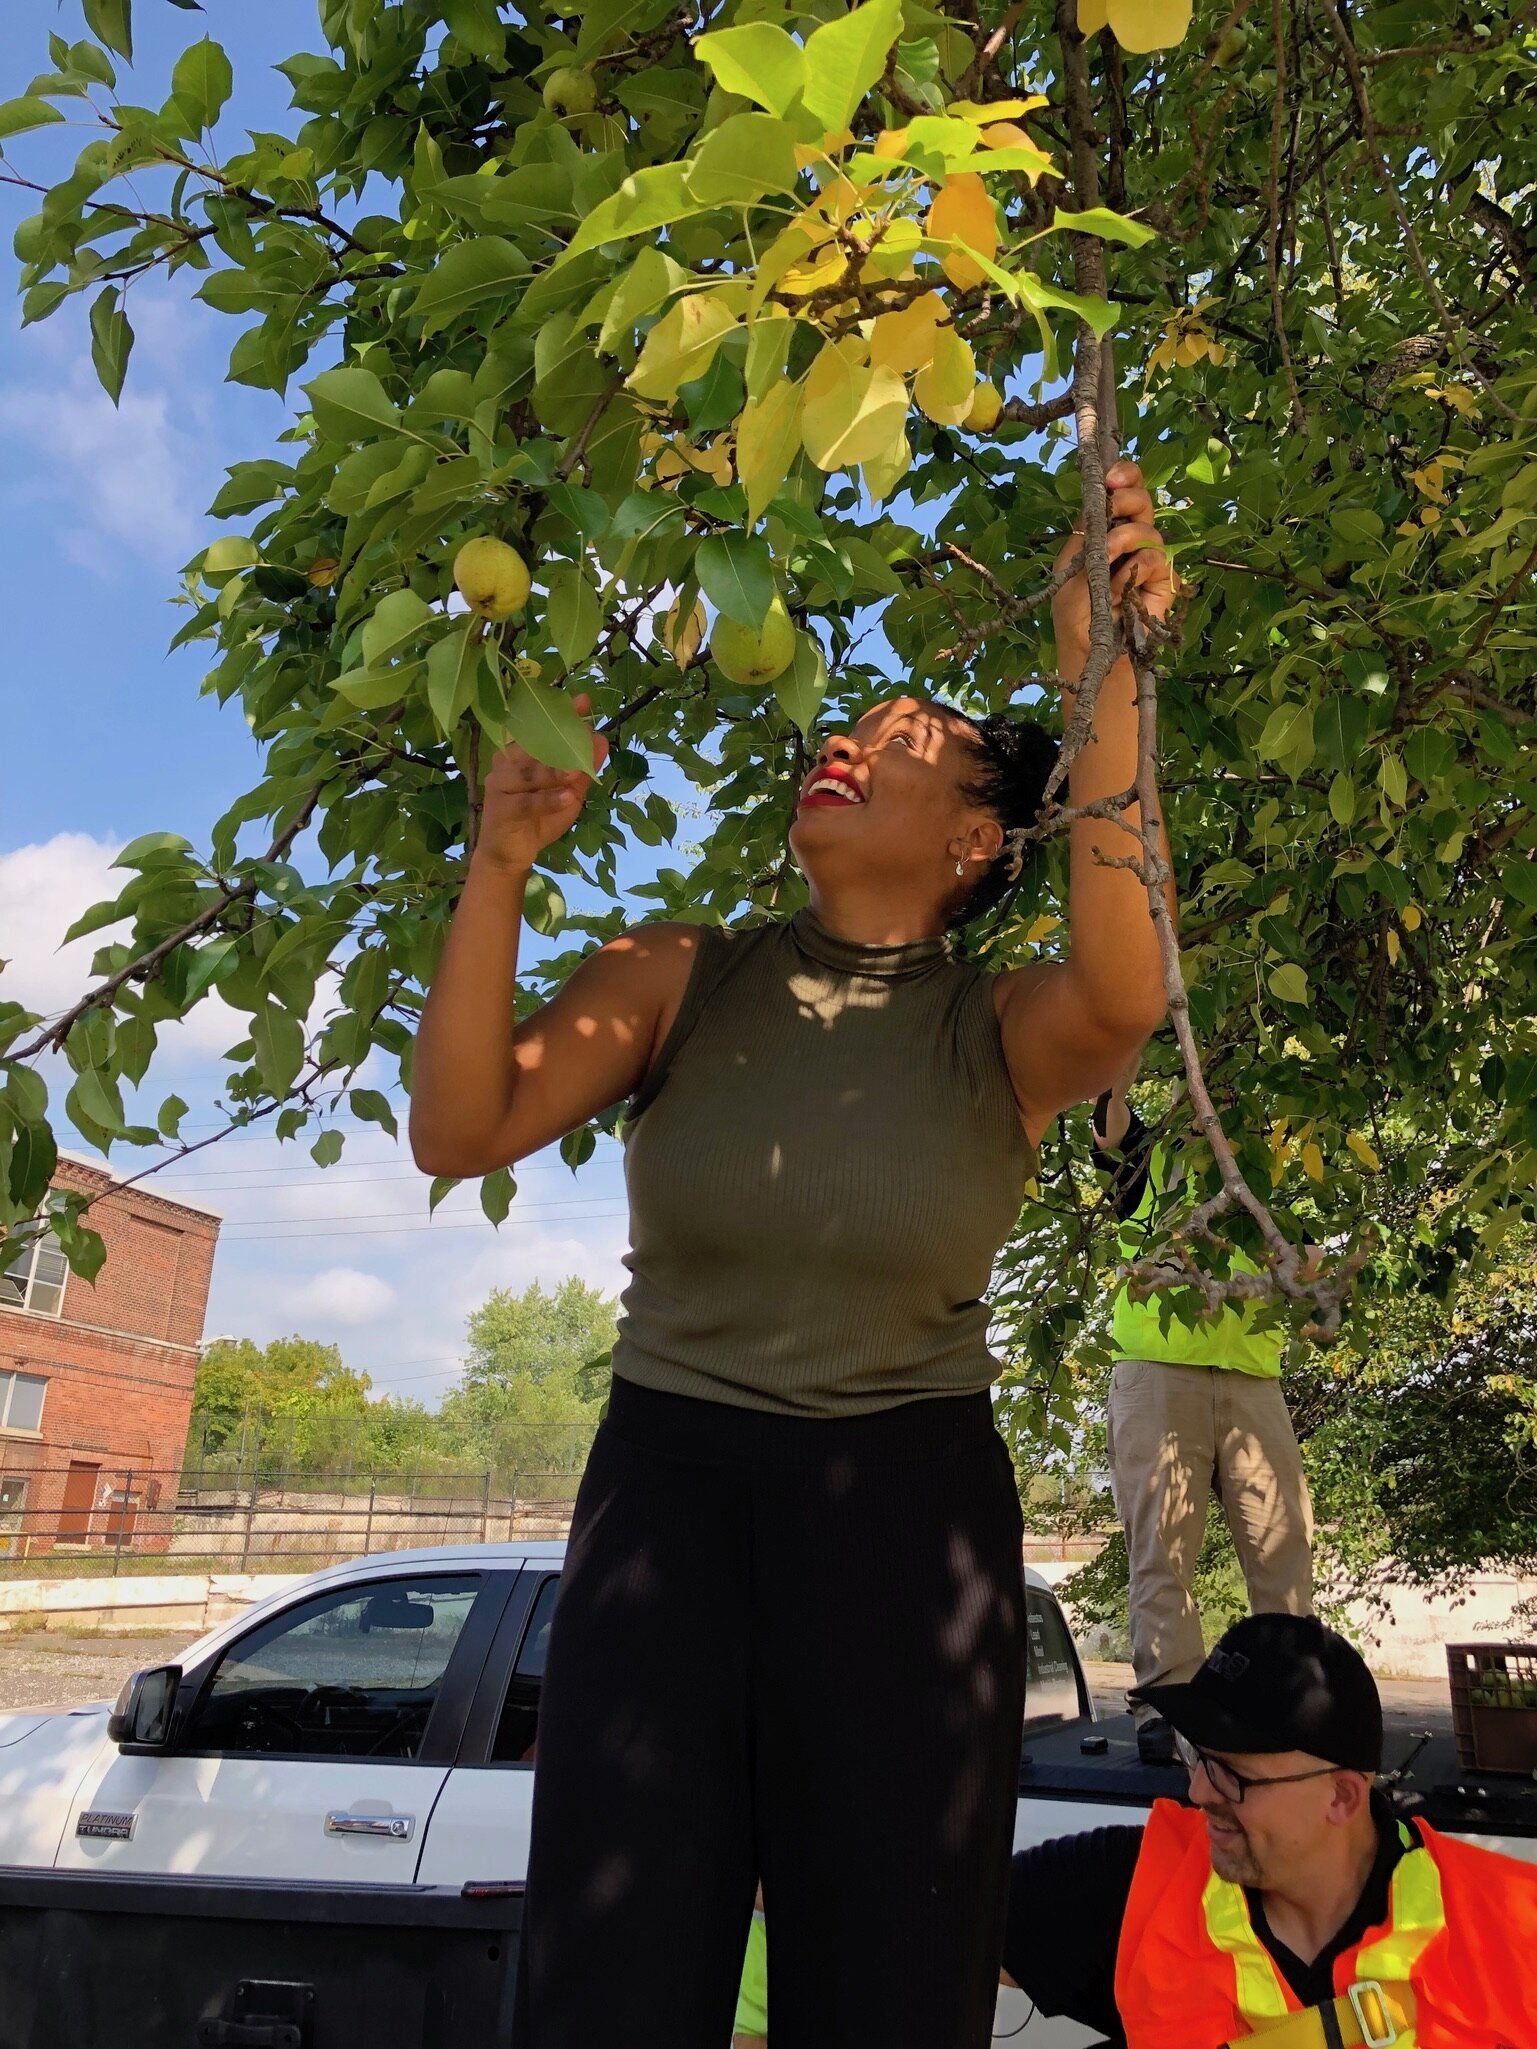 Volunteer Barbara Belli de Oliveira helps harvest pears from the tree at Electric Works.